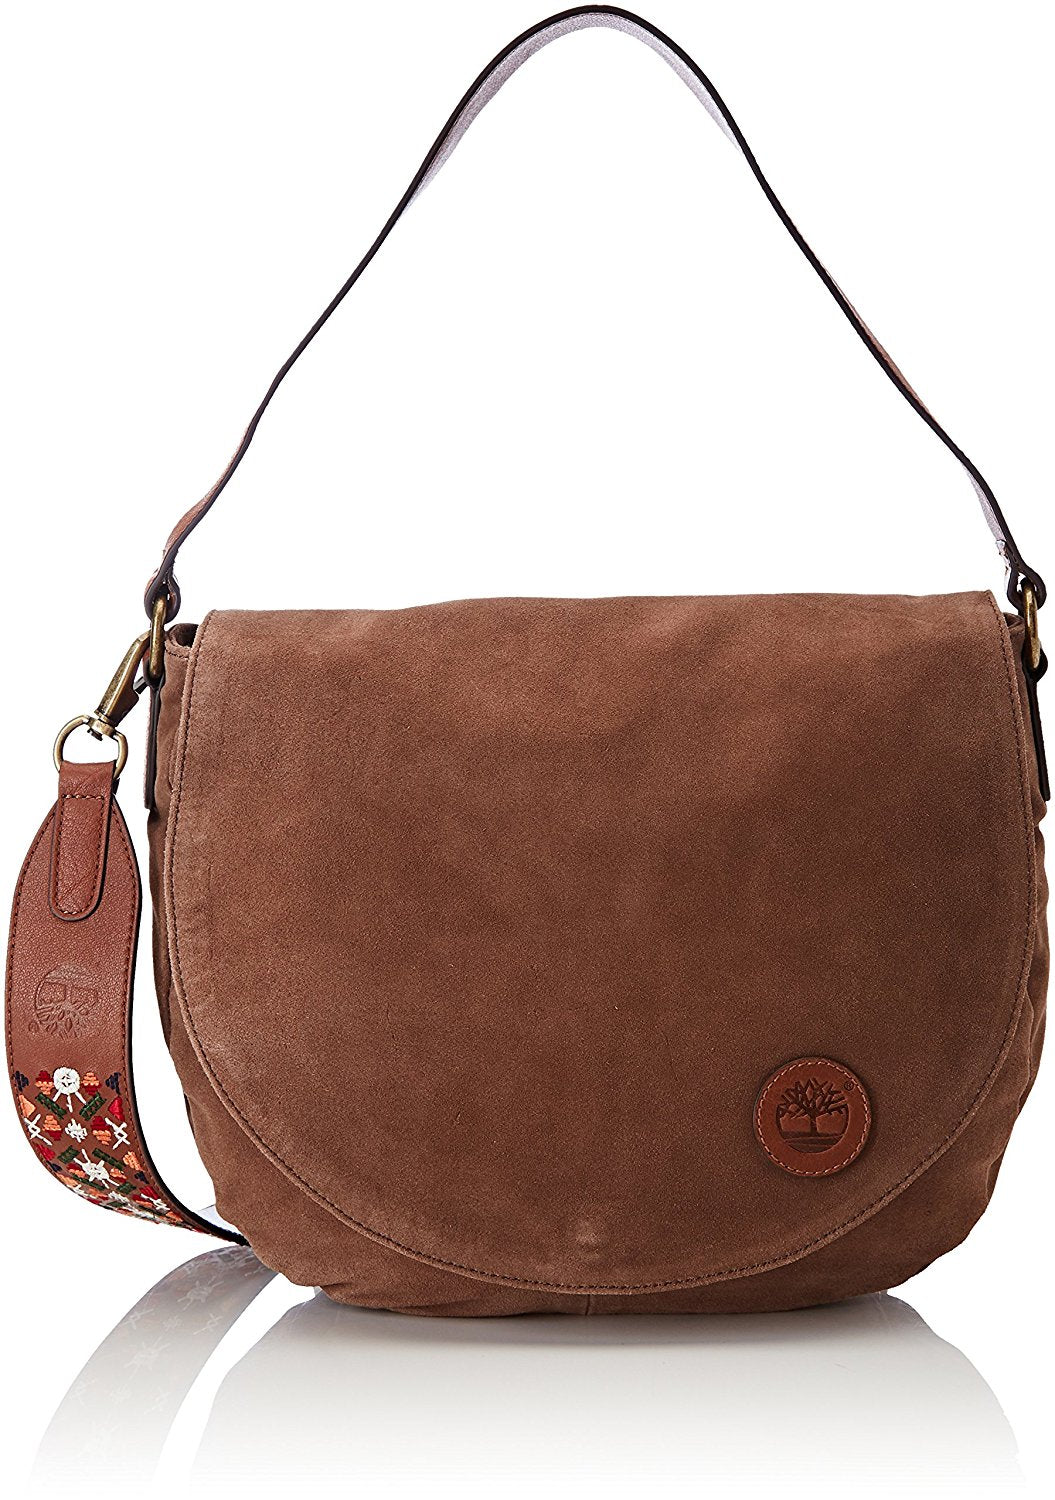 0b71155912 Handbags & Bags - Timberland Womens Saddle Bag Cross-Body Bag was ...